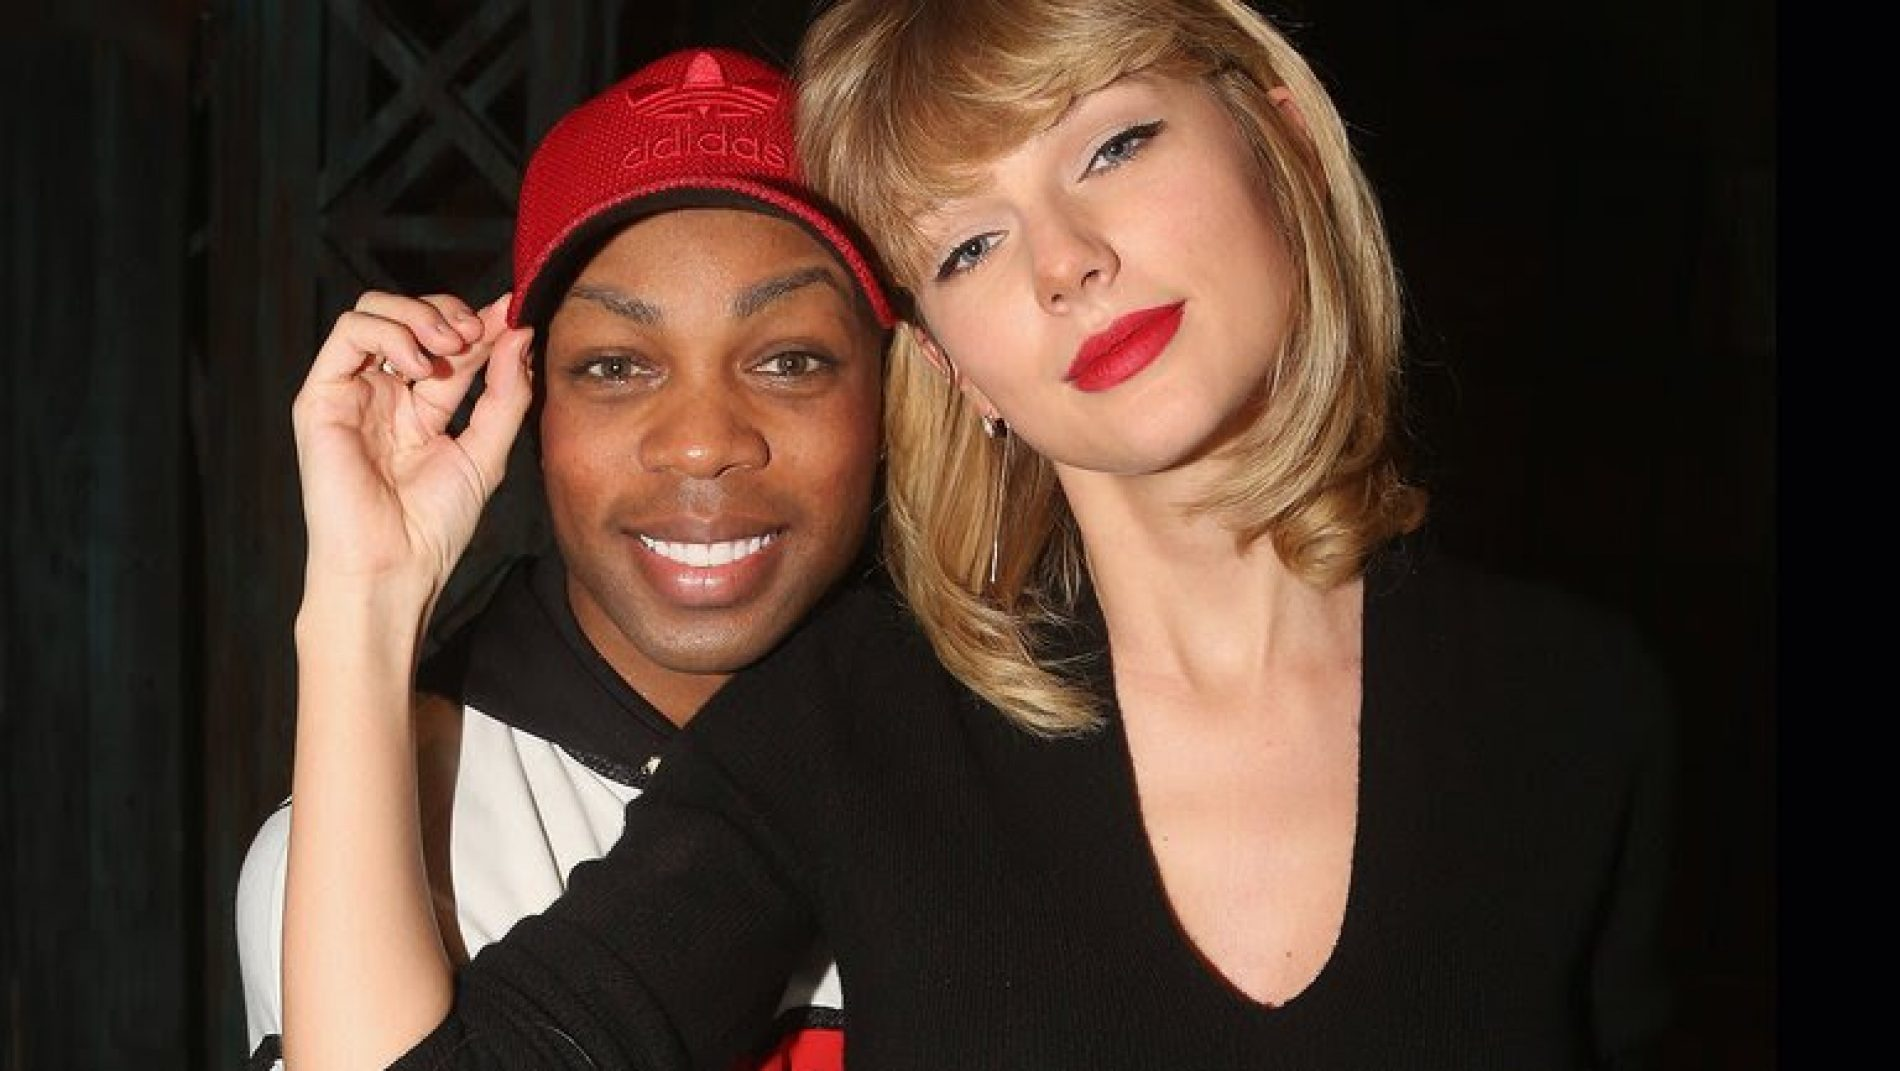 Todrick Hall talks about being friends with Taylor Swift and helping her use her voice to support the LGBT community